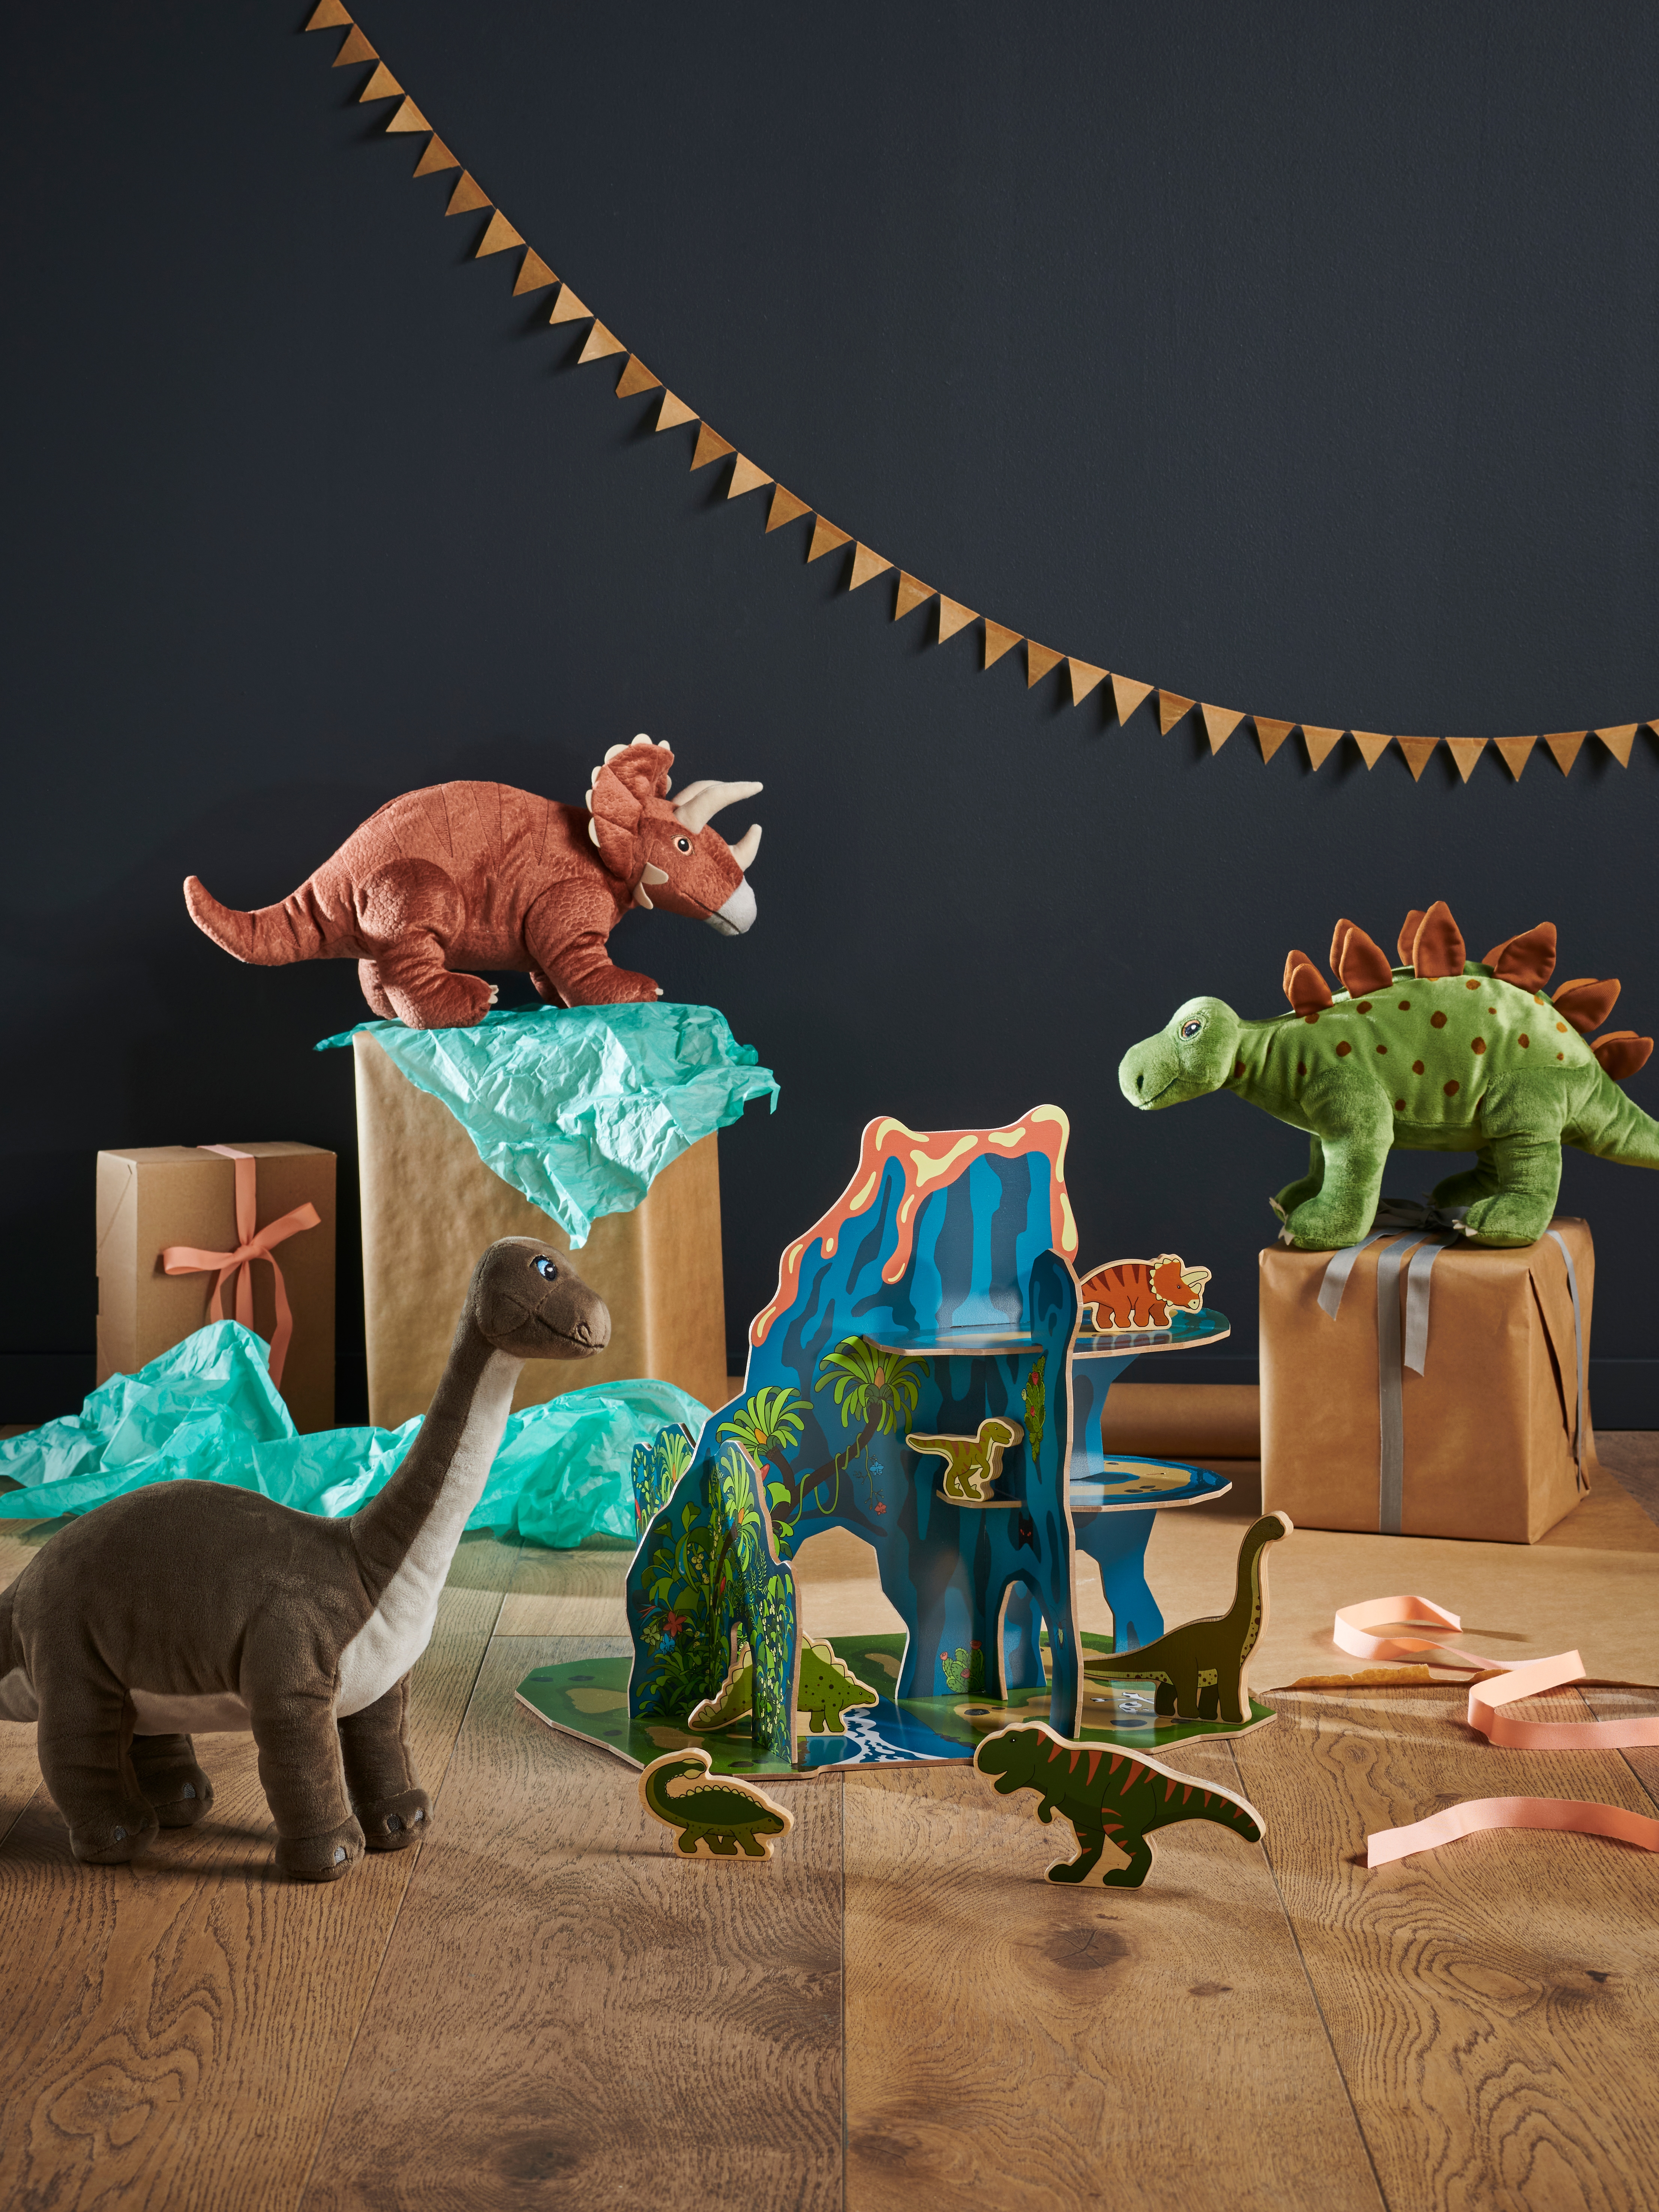 JÄTTELIK cardboard volcano and soft toy dinosaurs surrounding wrapped boxes and tissue paper with bunting in background.